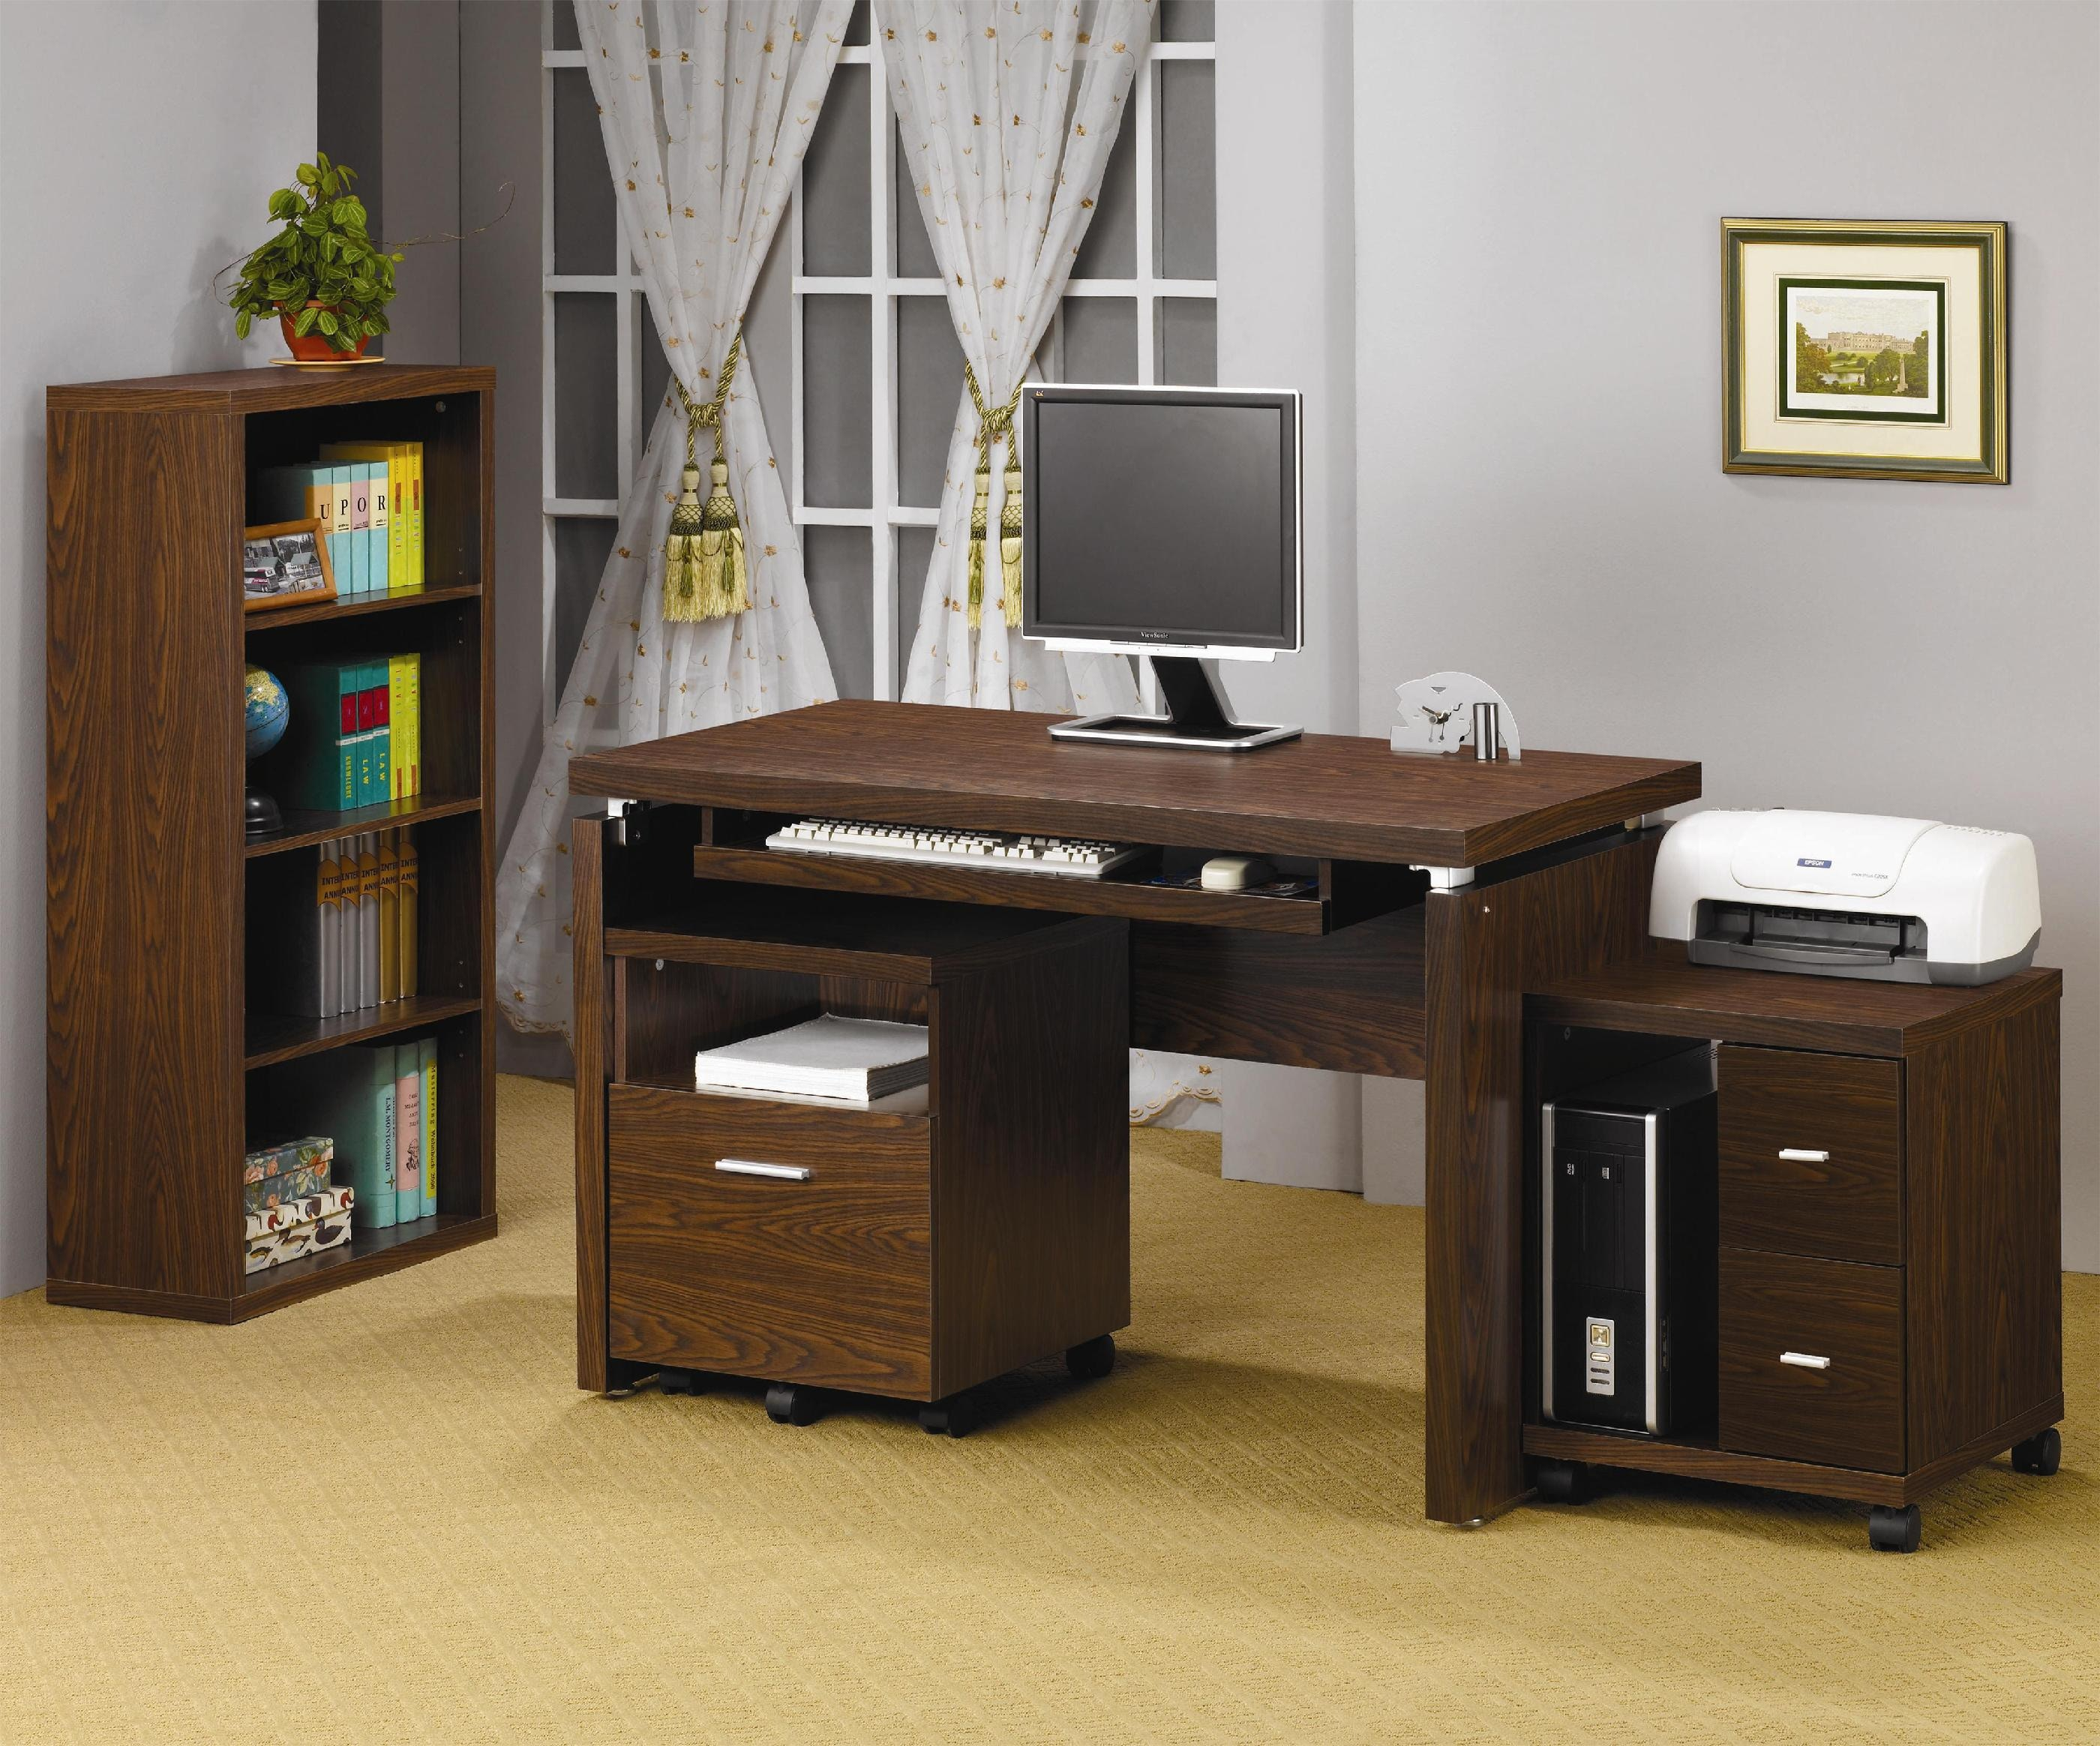 Simple Furniture Store In Yuba City, Marysville, Sacramento And Surrounding  Sutter County Name Brand And Manufacturers Include Lazyboy, Uttermost,  Broyhill, ...